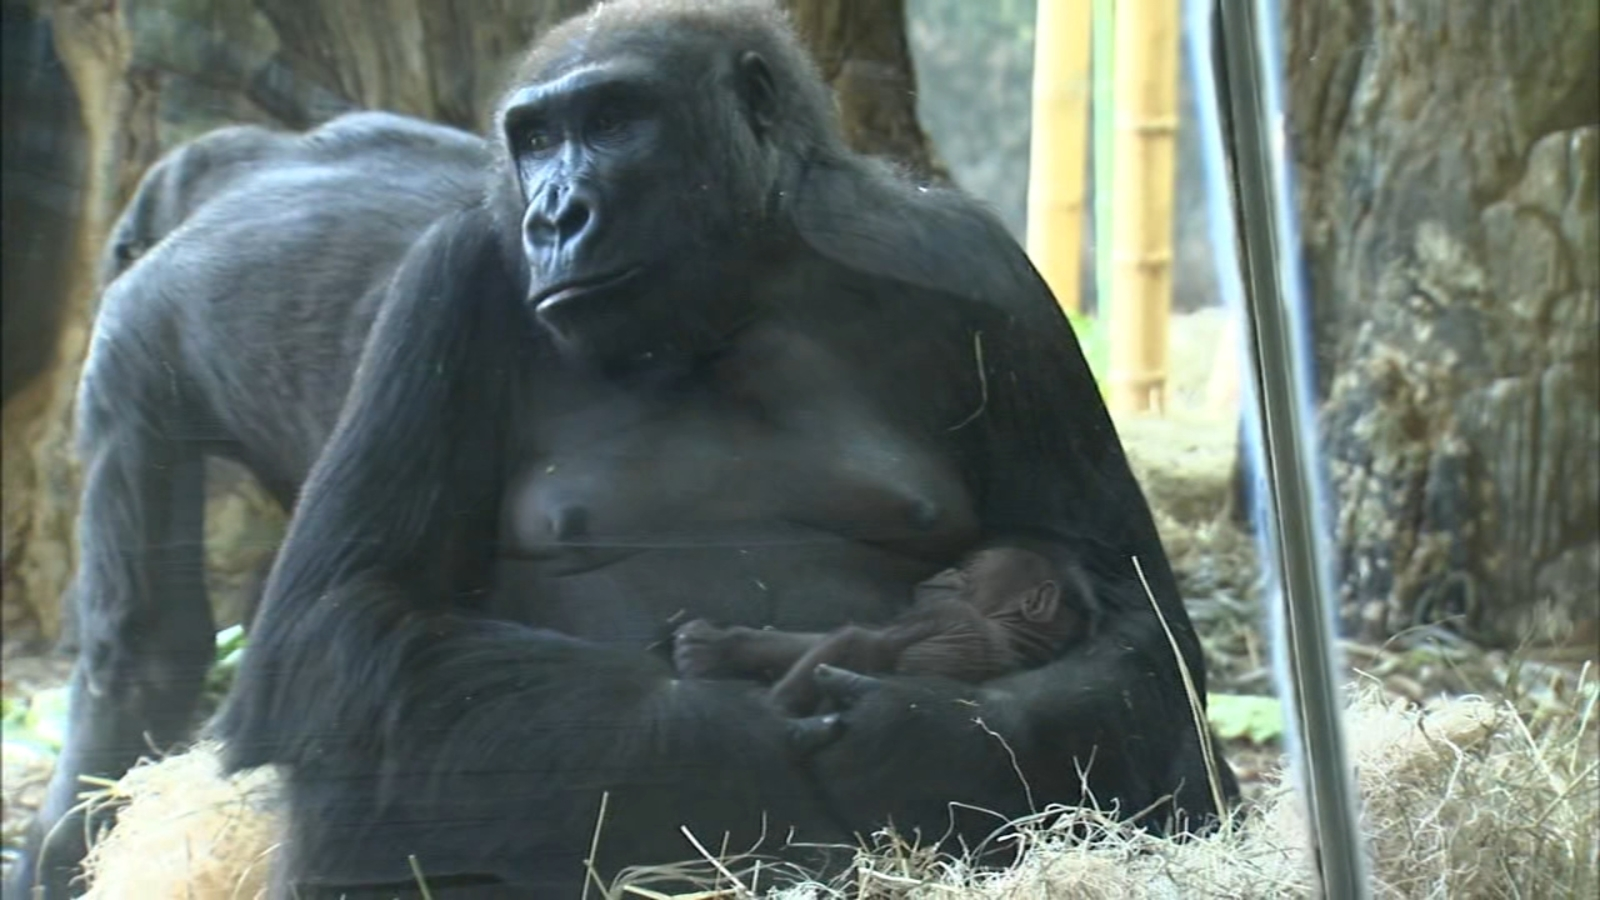 Lincoln Park Zoo: Baby gorilla born on Mother's Day